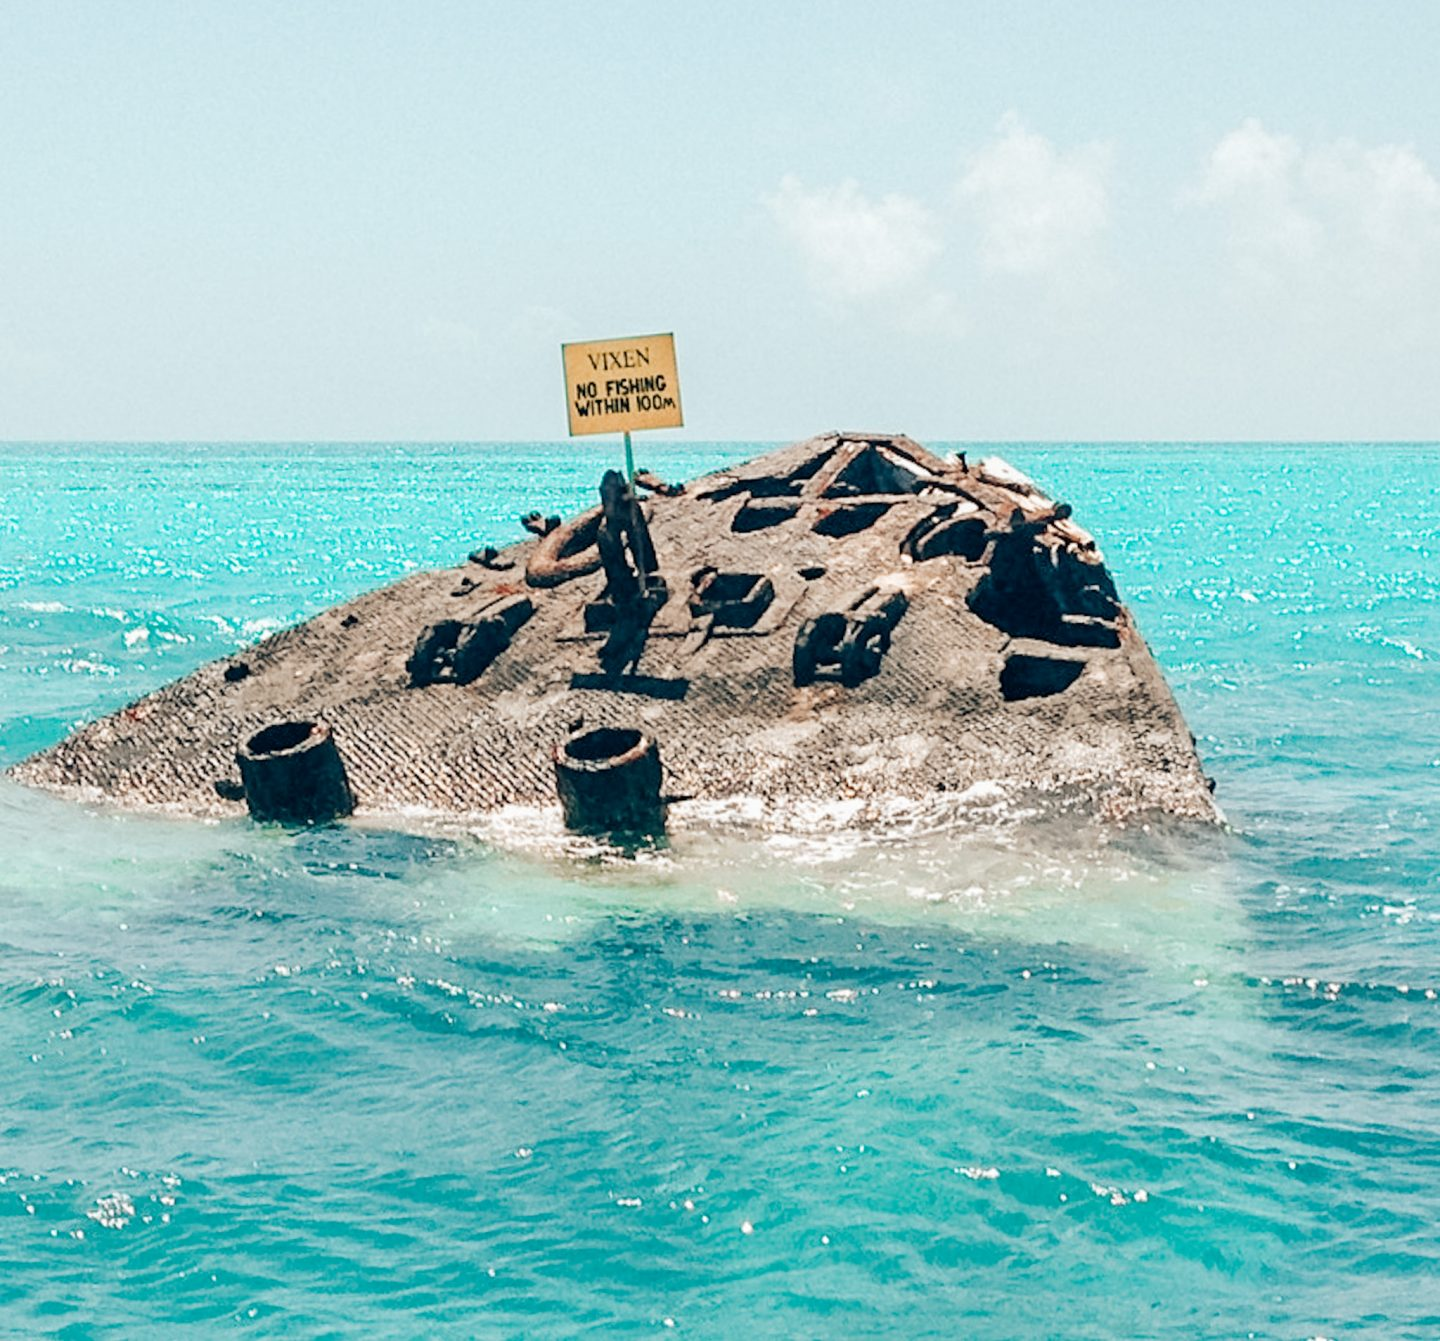 One of the Bermuda Triangle's famous shipwrecks